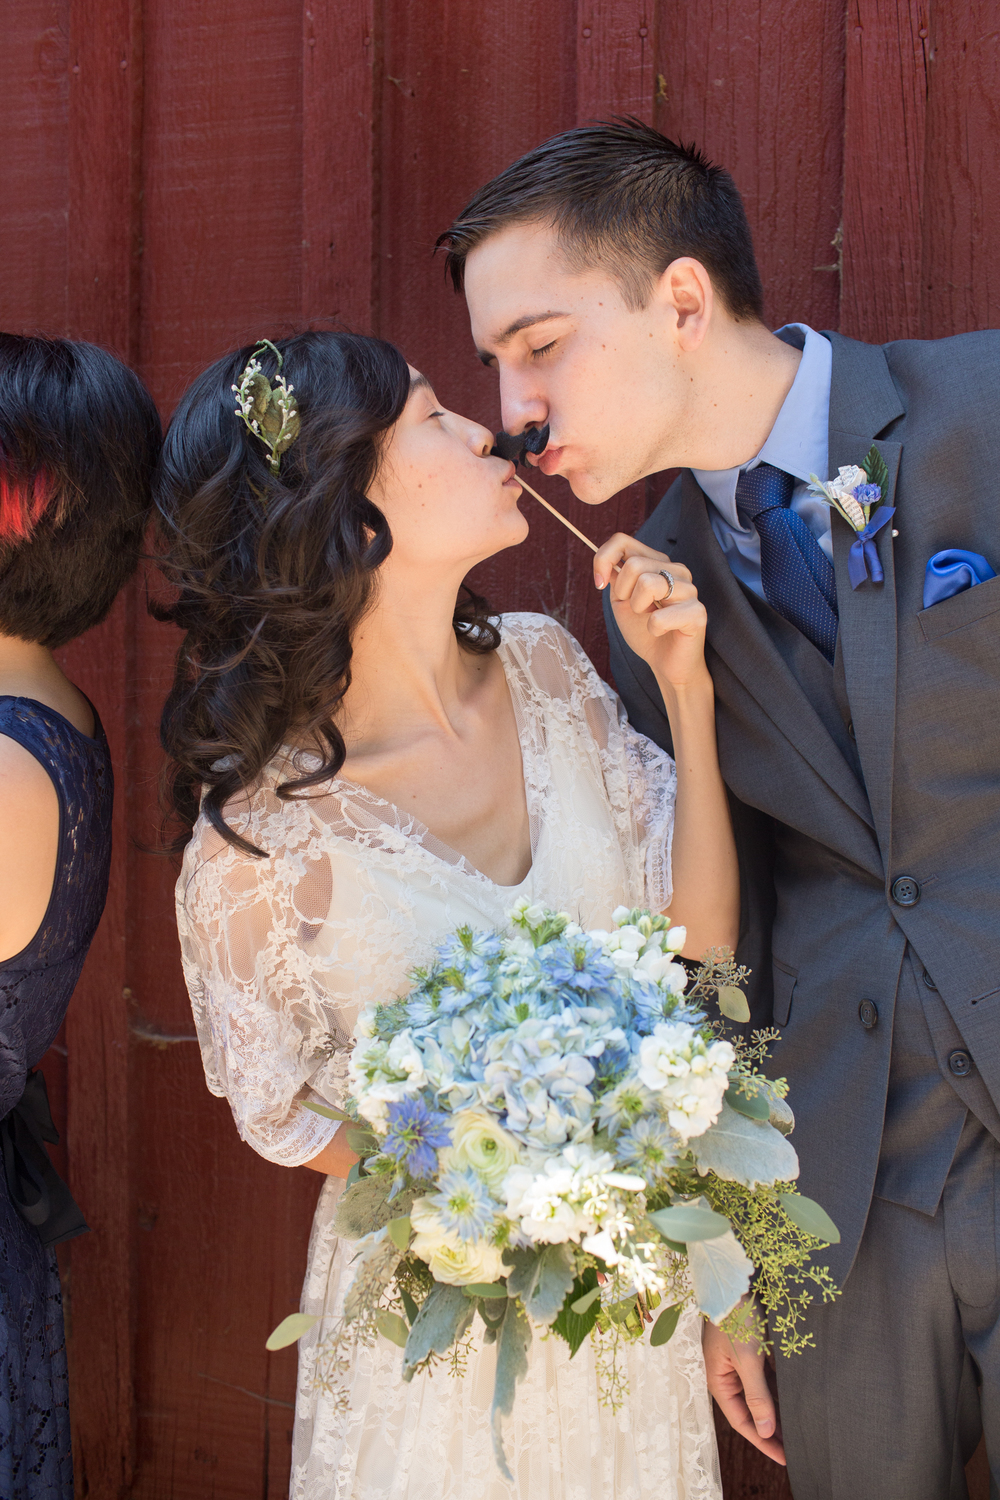 Chico California Wedding and Engagement Photography by TréCreative - Fremont Wedding Photography (166 of 261).jpg